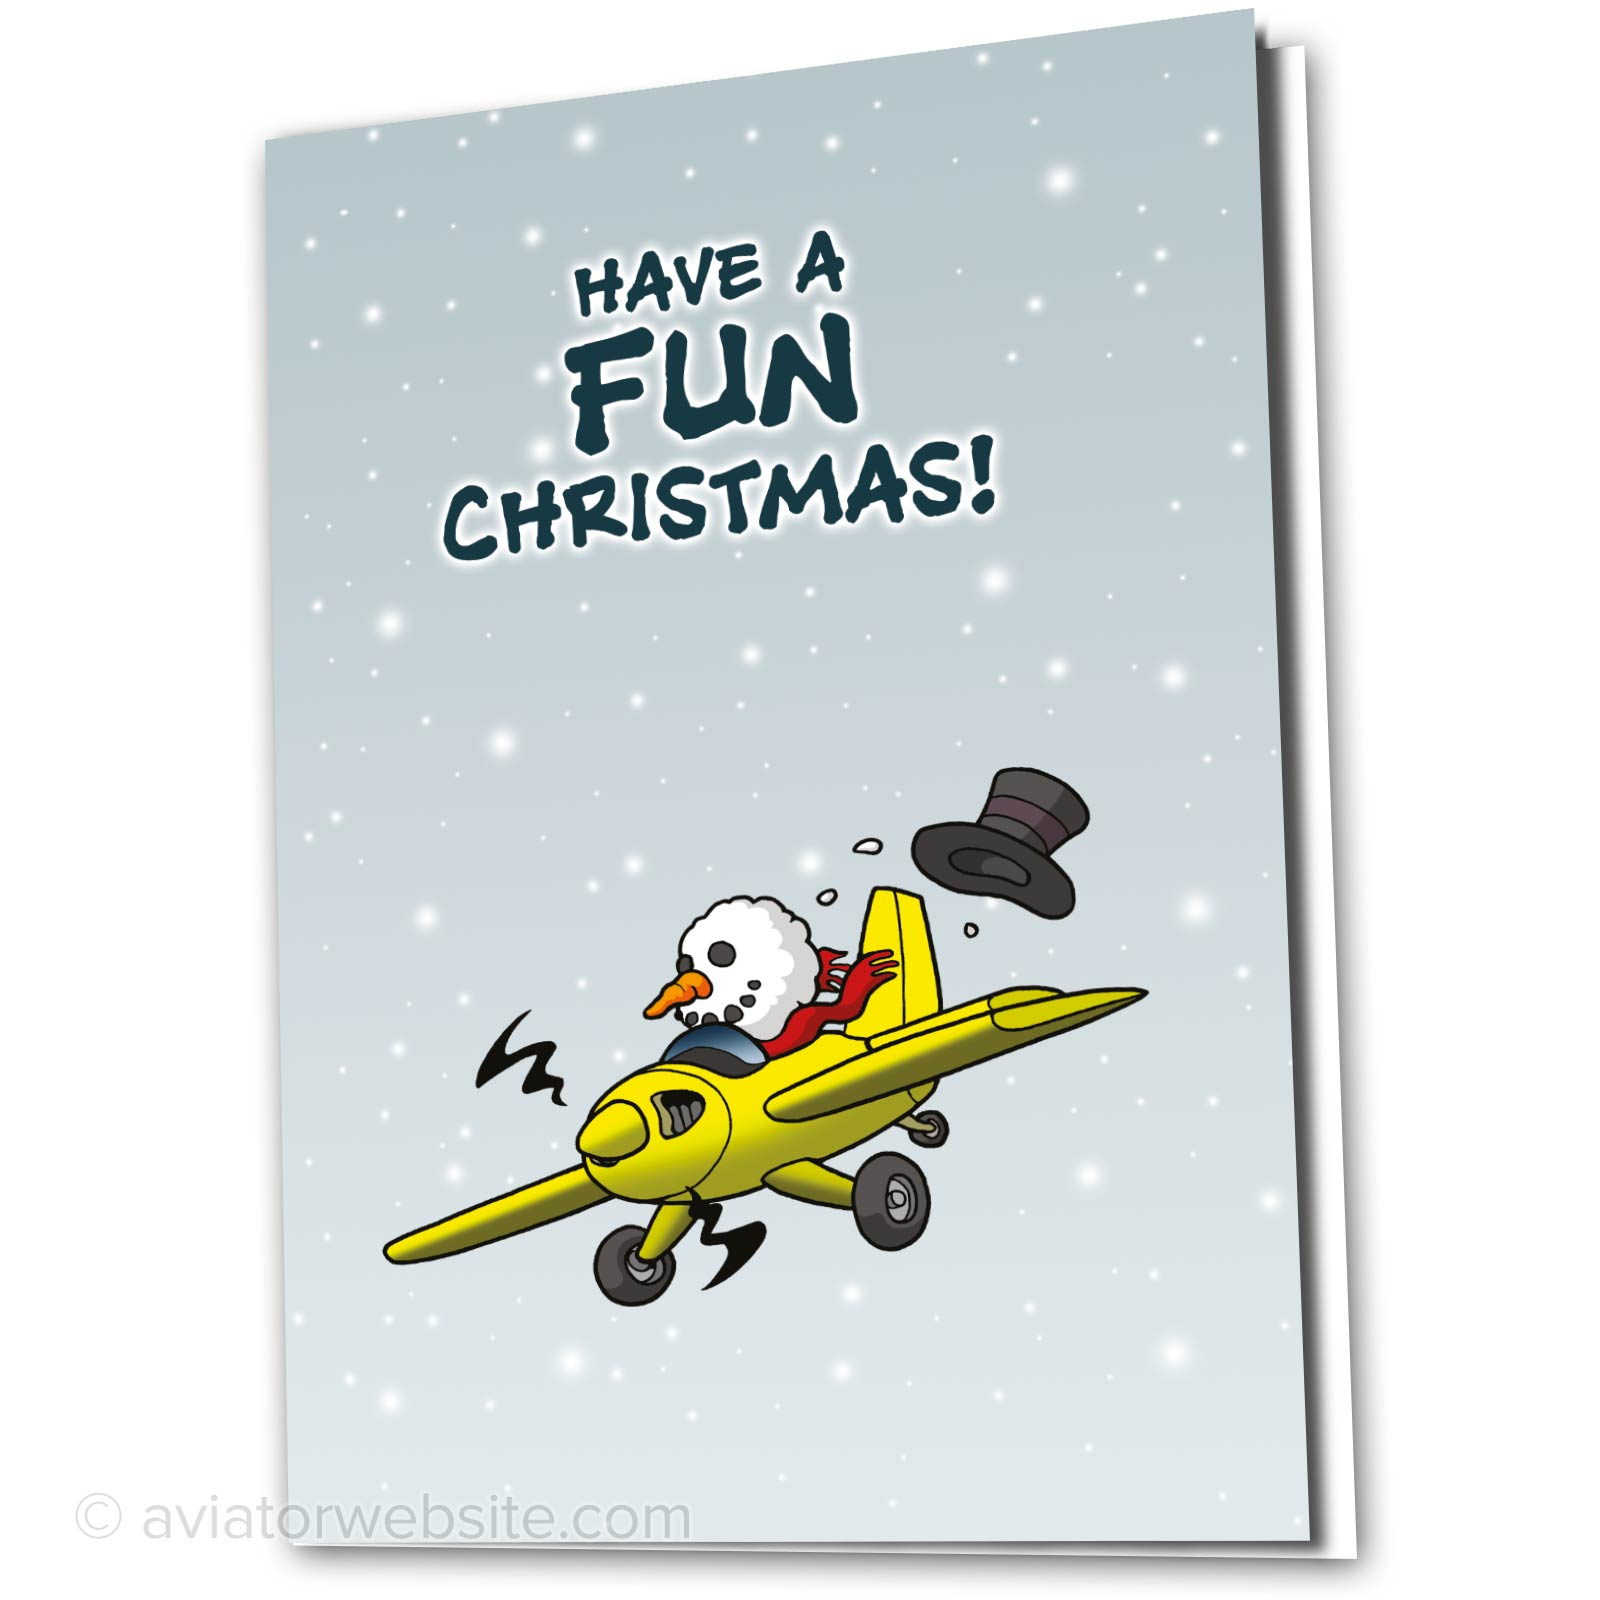 Aviation Christmas Cards for pilots and airplane geeks | AVIATORwebsite